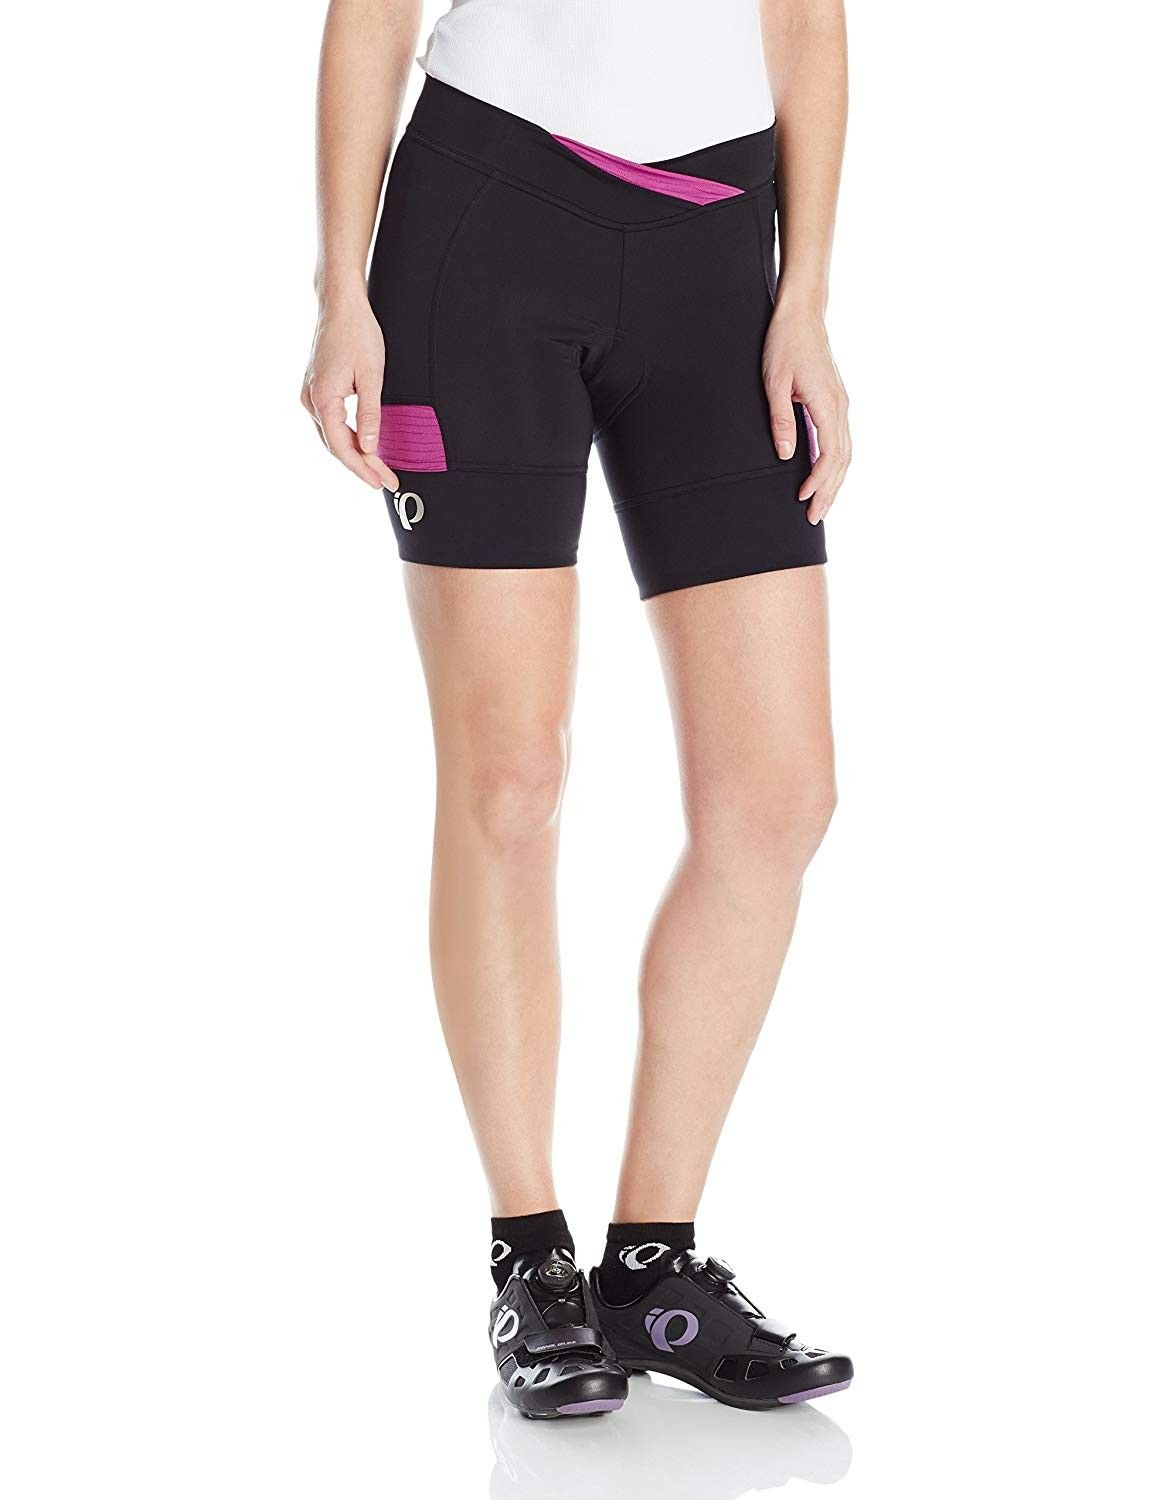 Women's Select Escape Texture Shorts - Black/Purple Wine - C4122P9PHLR - Sports & Fitness Clothing,...